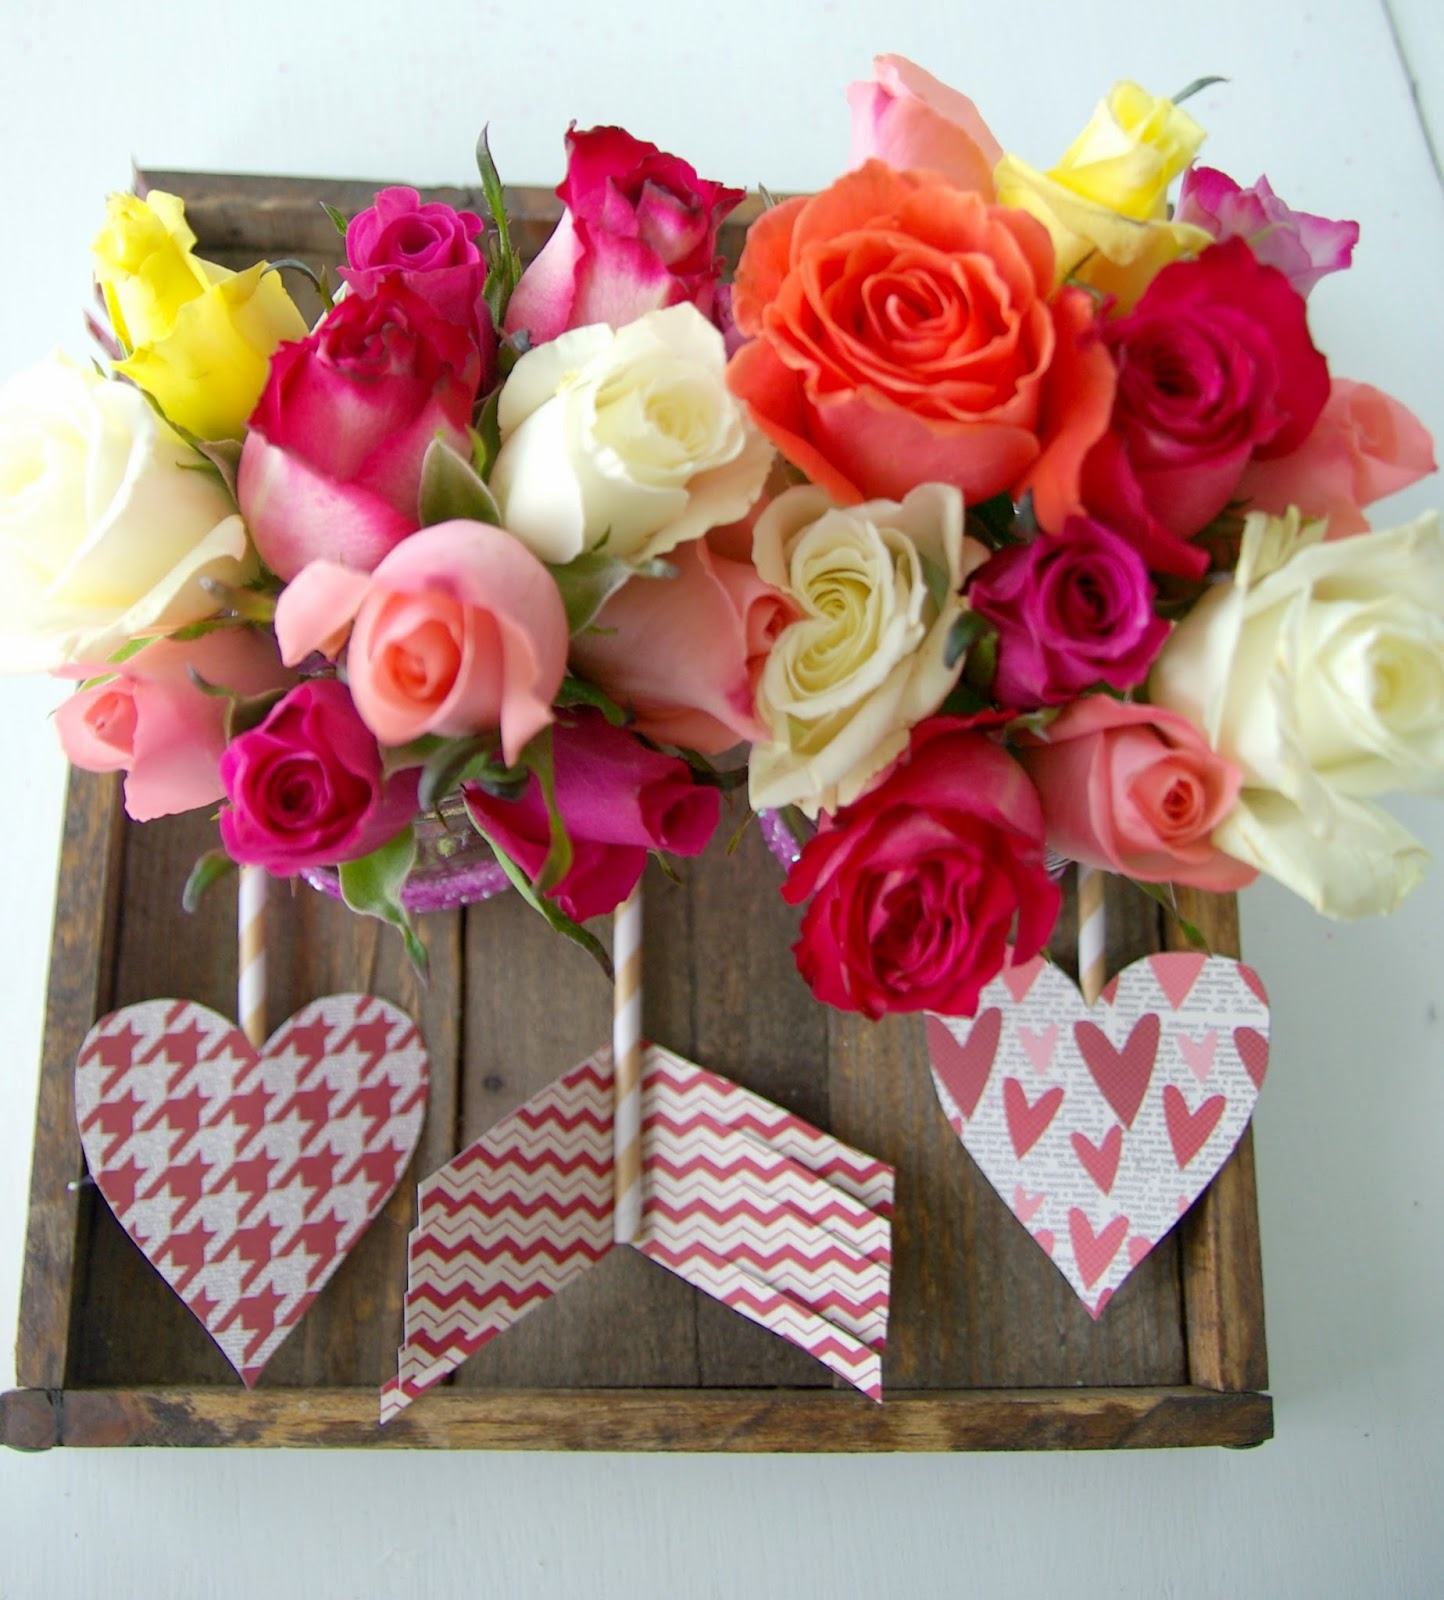 Valentine's day table decor options